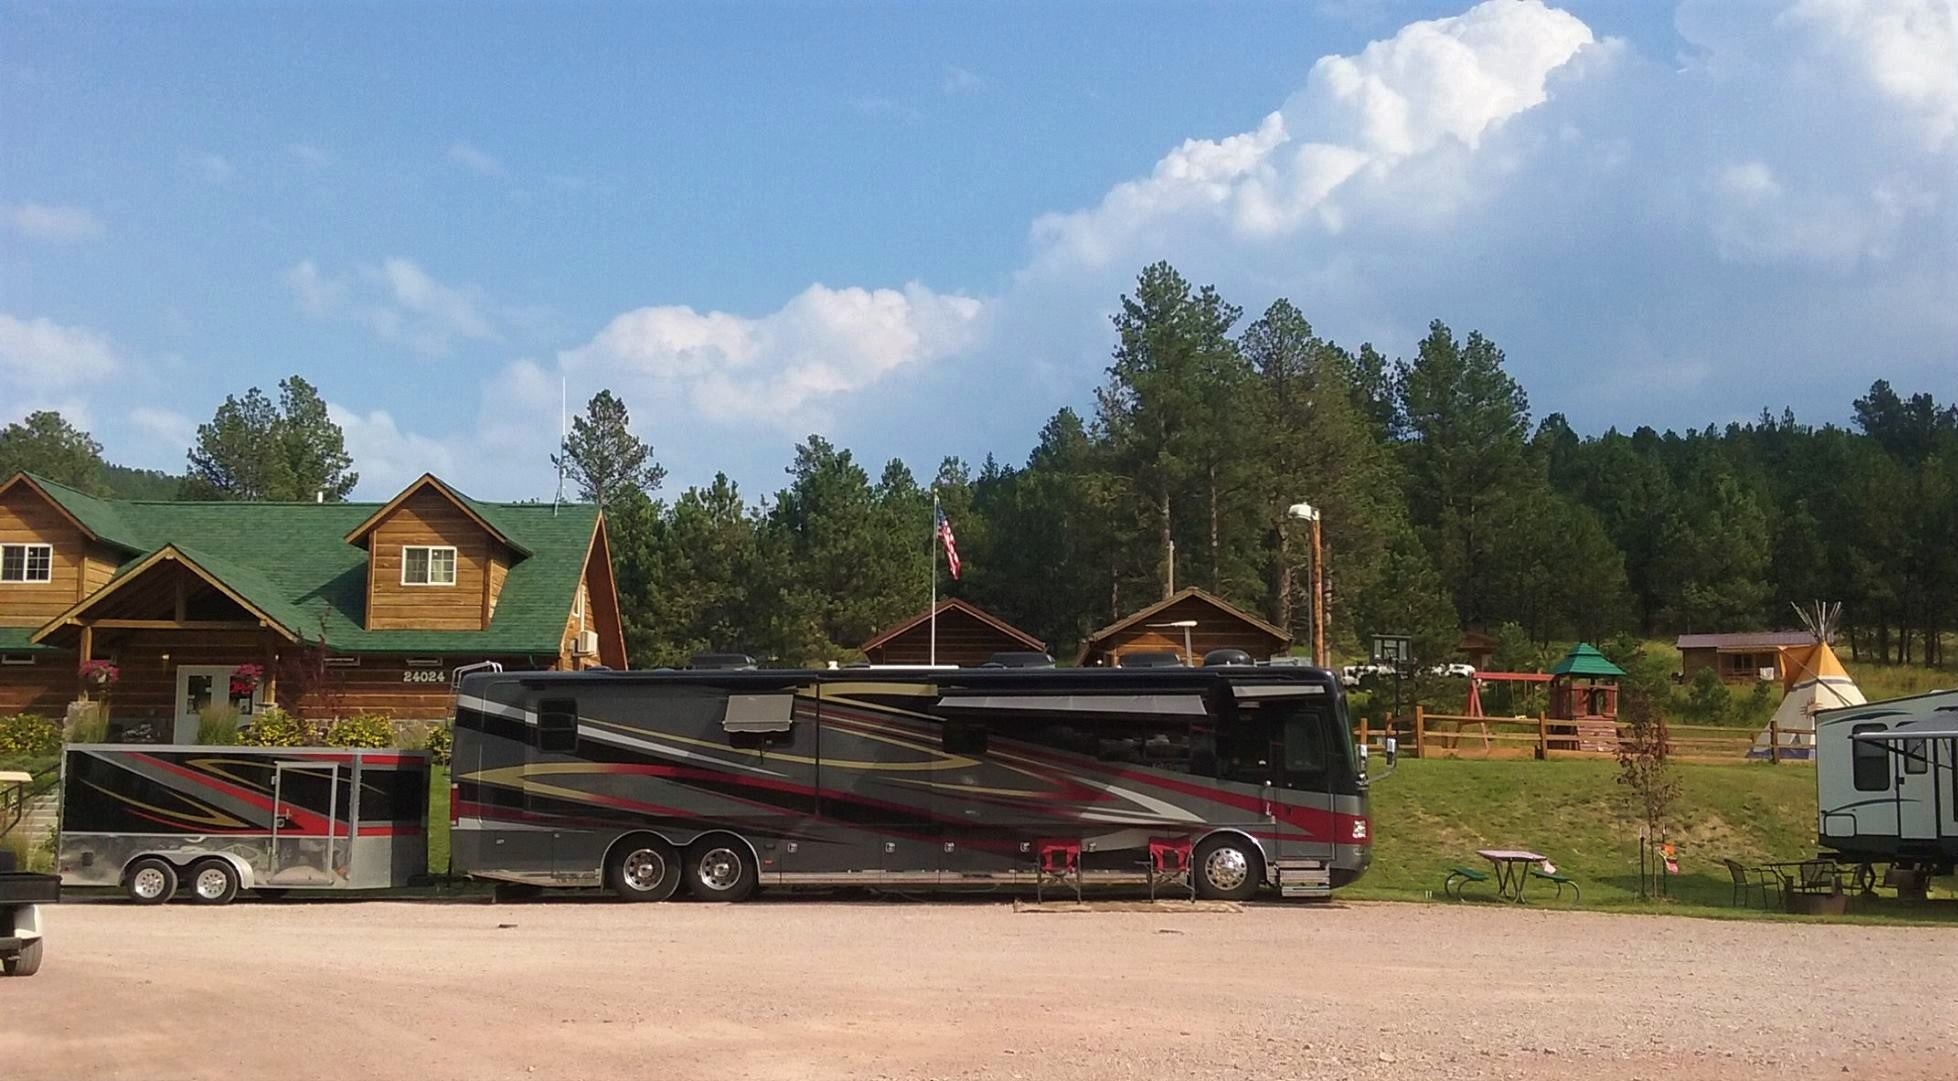 large red, gray, and black rv parked in from of log building at black hills trailside park resort